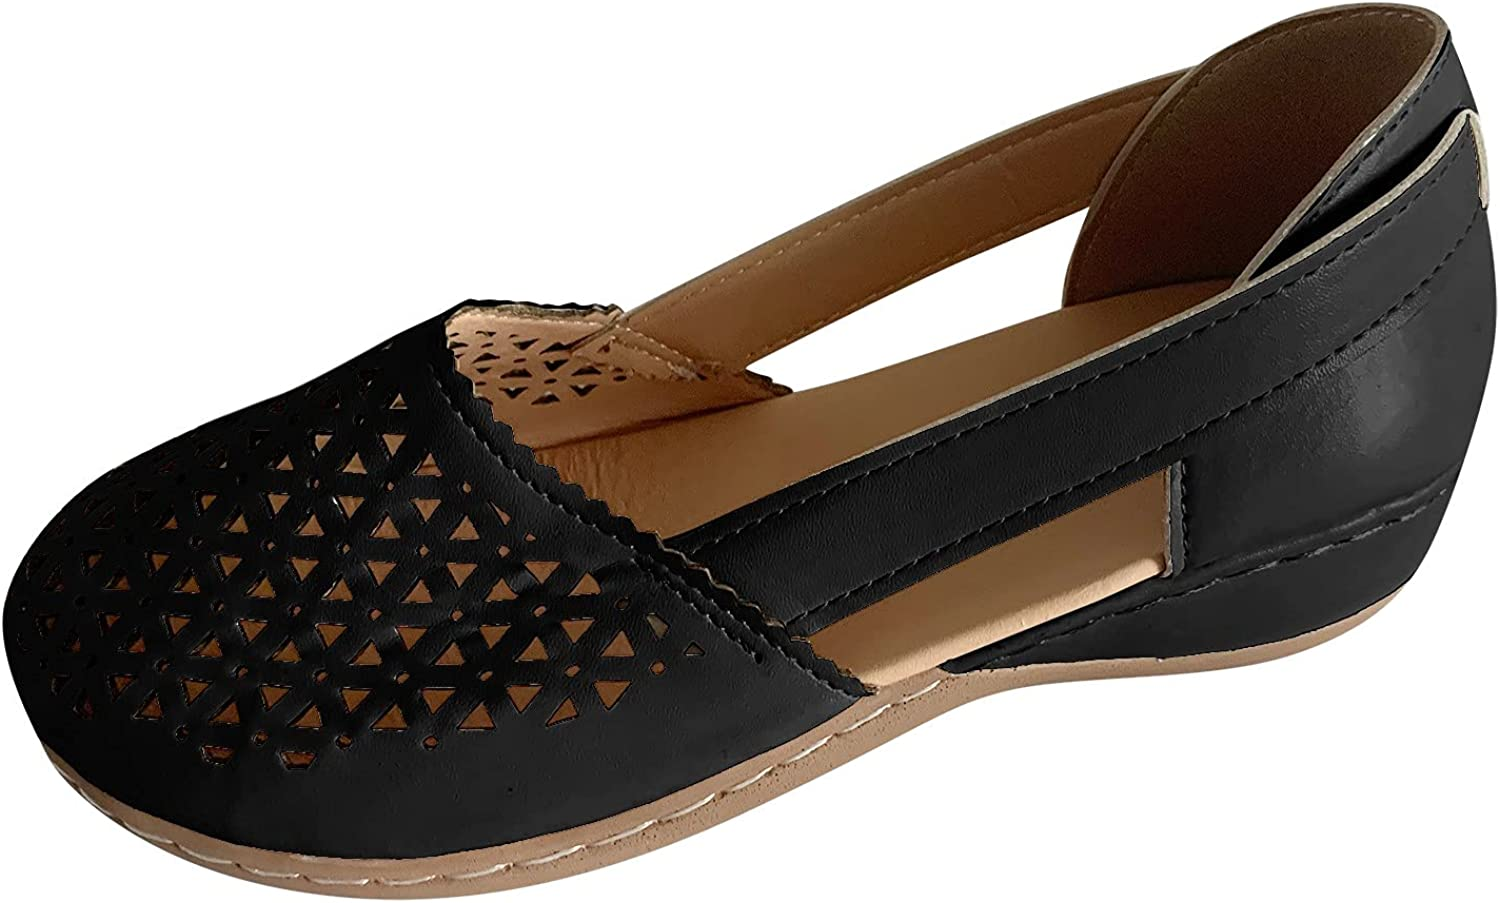 USYFAKGH Dress Sandals For Women Fashion Casual Shoes Breathable